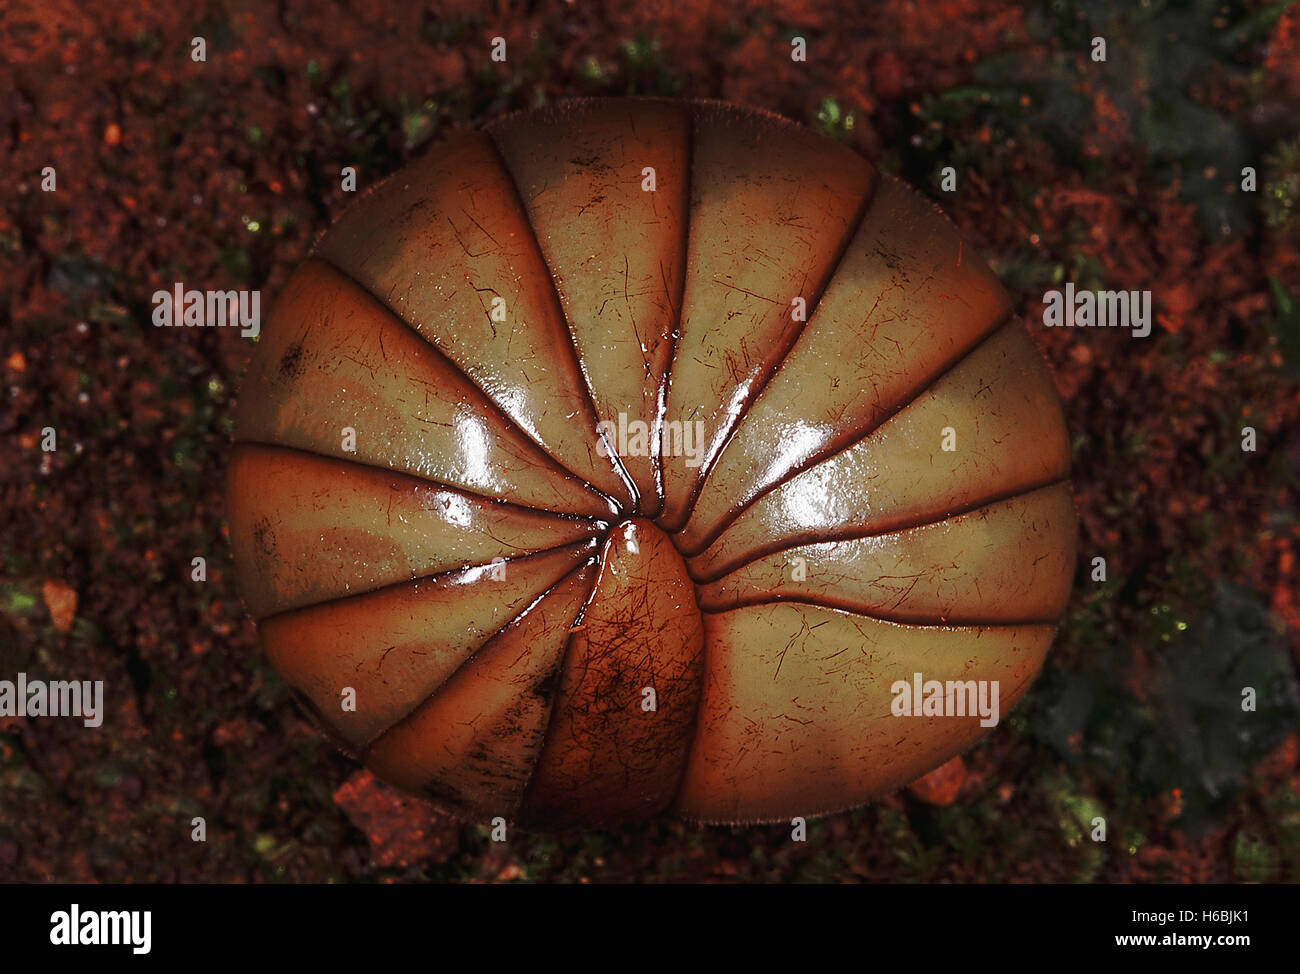 Pill Millipede. Family: Arthropod. Pill millipedes coil up like a round ball when disturbed - Stock Image